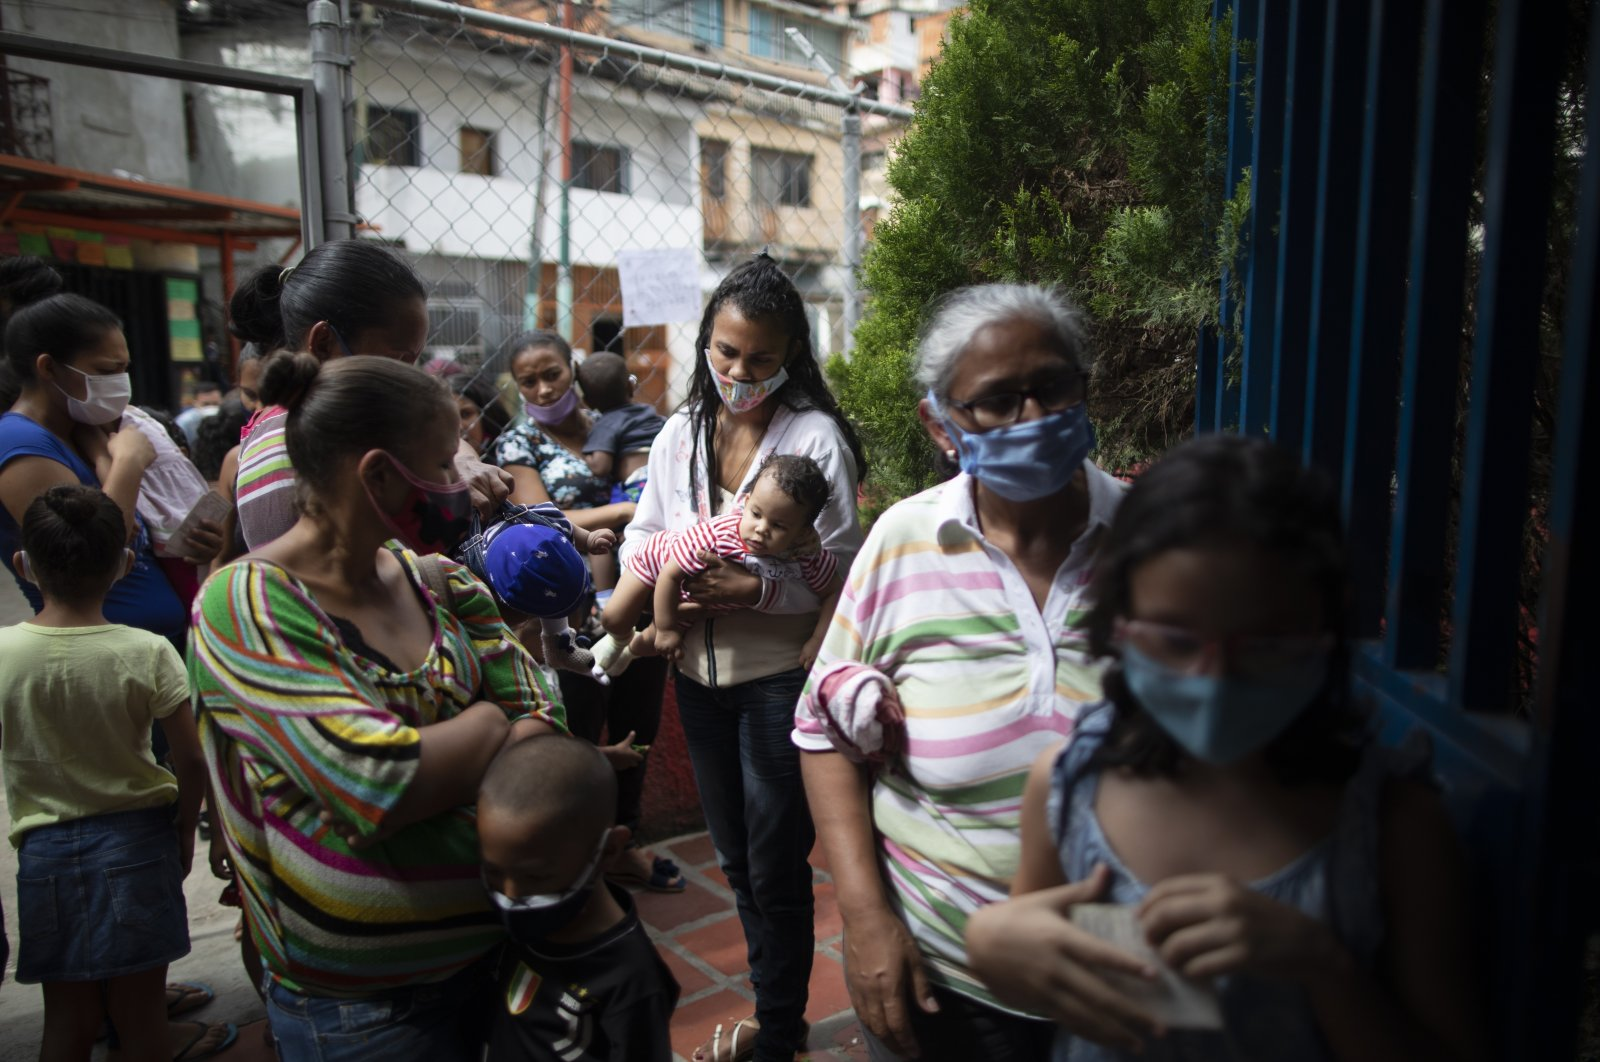 Residents, wearing face masks amid the new coronavirus, wait their turn during a vaccination campaign organized by the Health Ministry, in the El Valle neighborhood of Caracas, Venezuela, Nov. 20, 2020. (AP Photo)